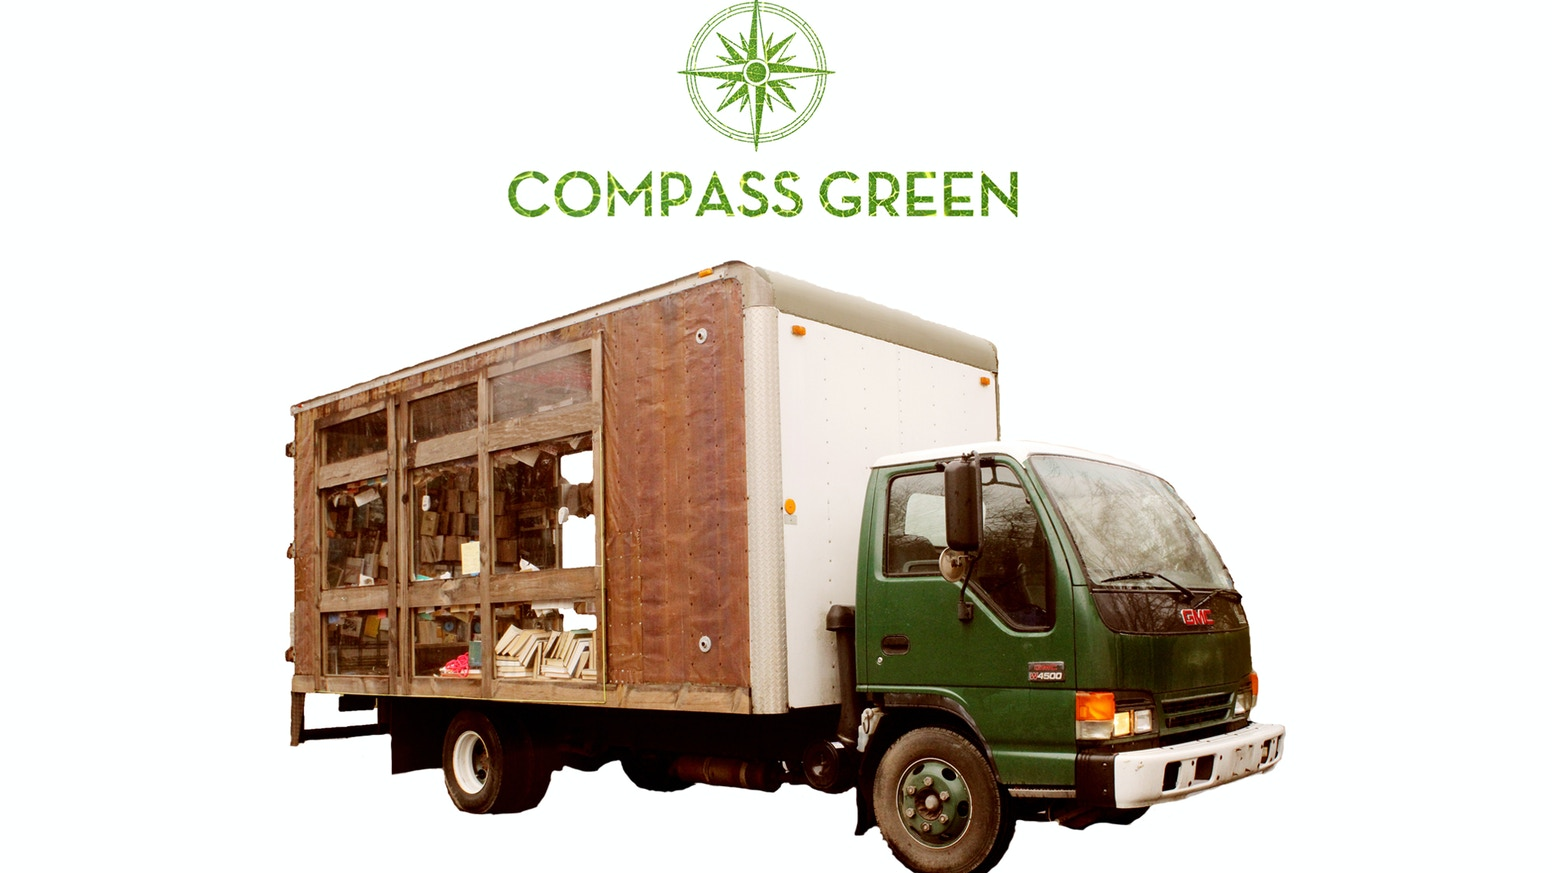 Compass Green is a greenhouse on wheels designed to teach sustainability to new audiences across the country.